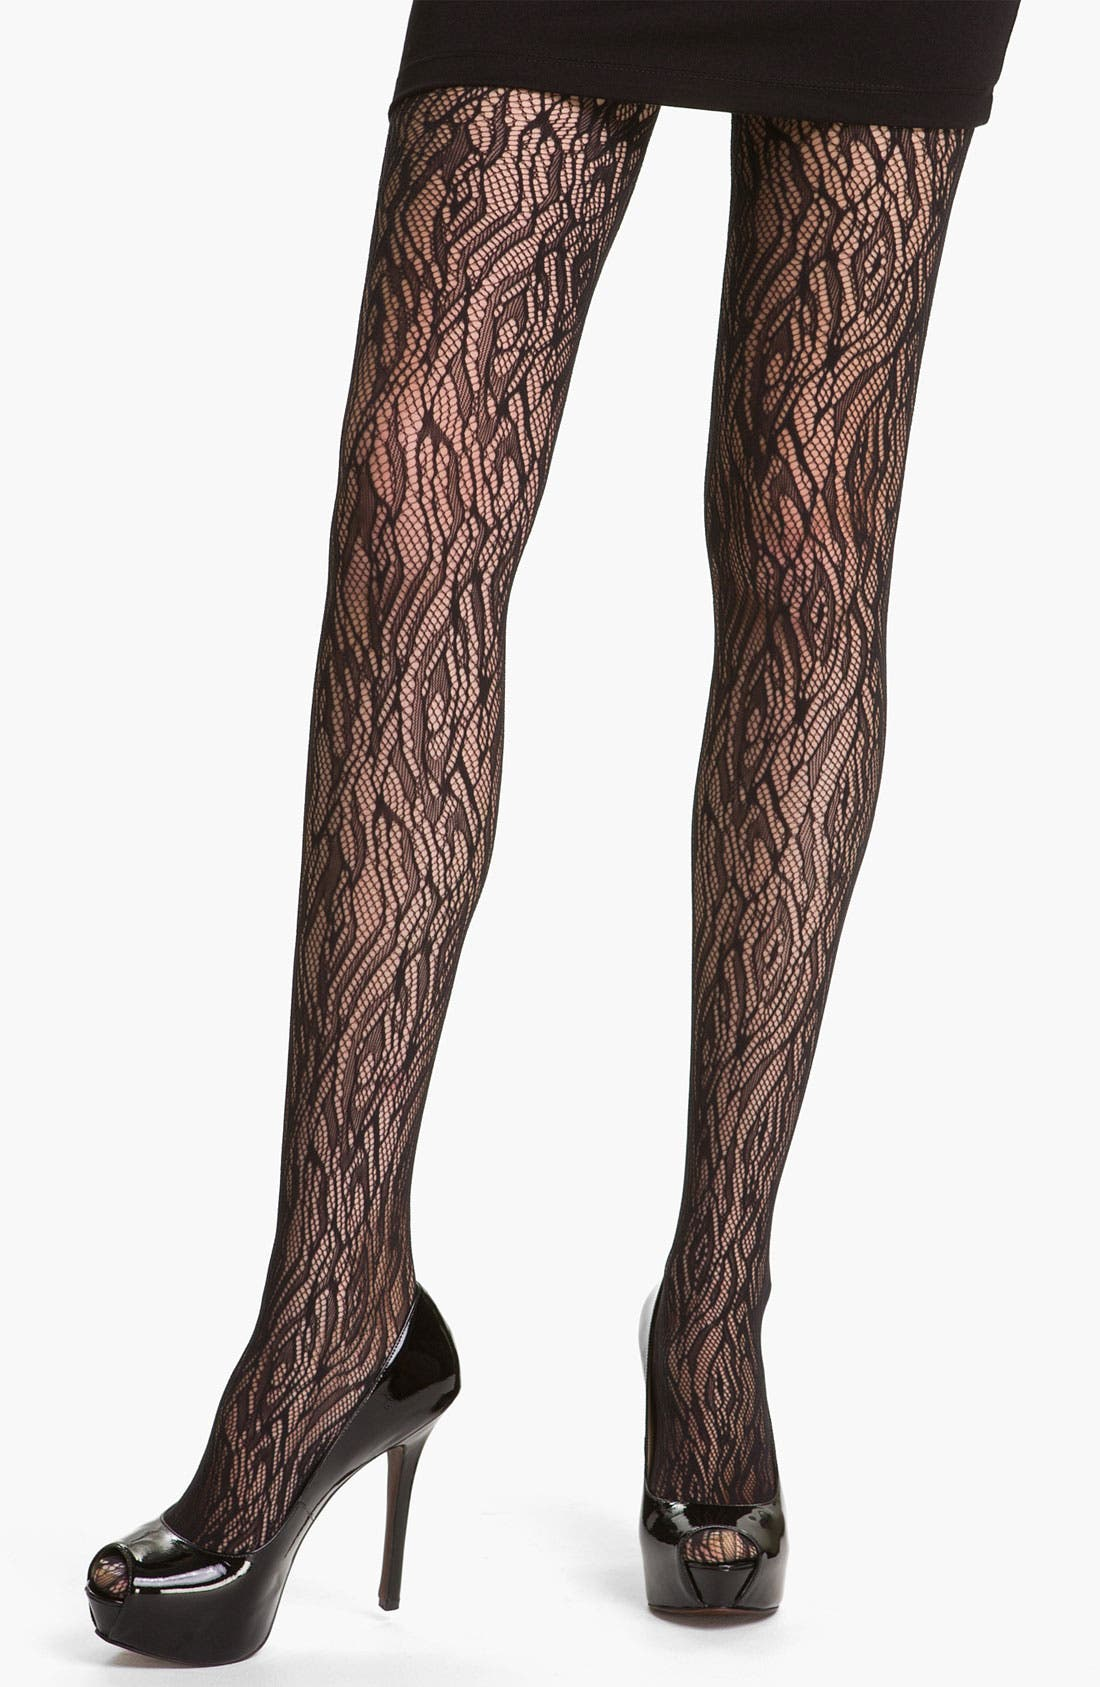 Main Image - Wolford 'Fire' Net Tights